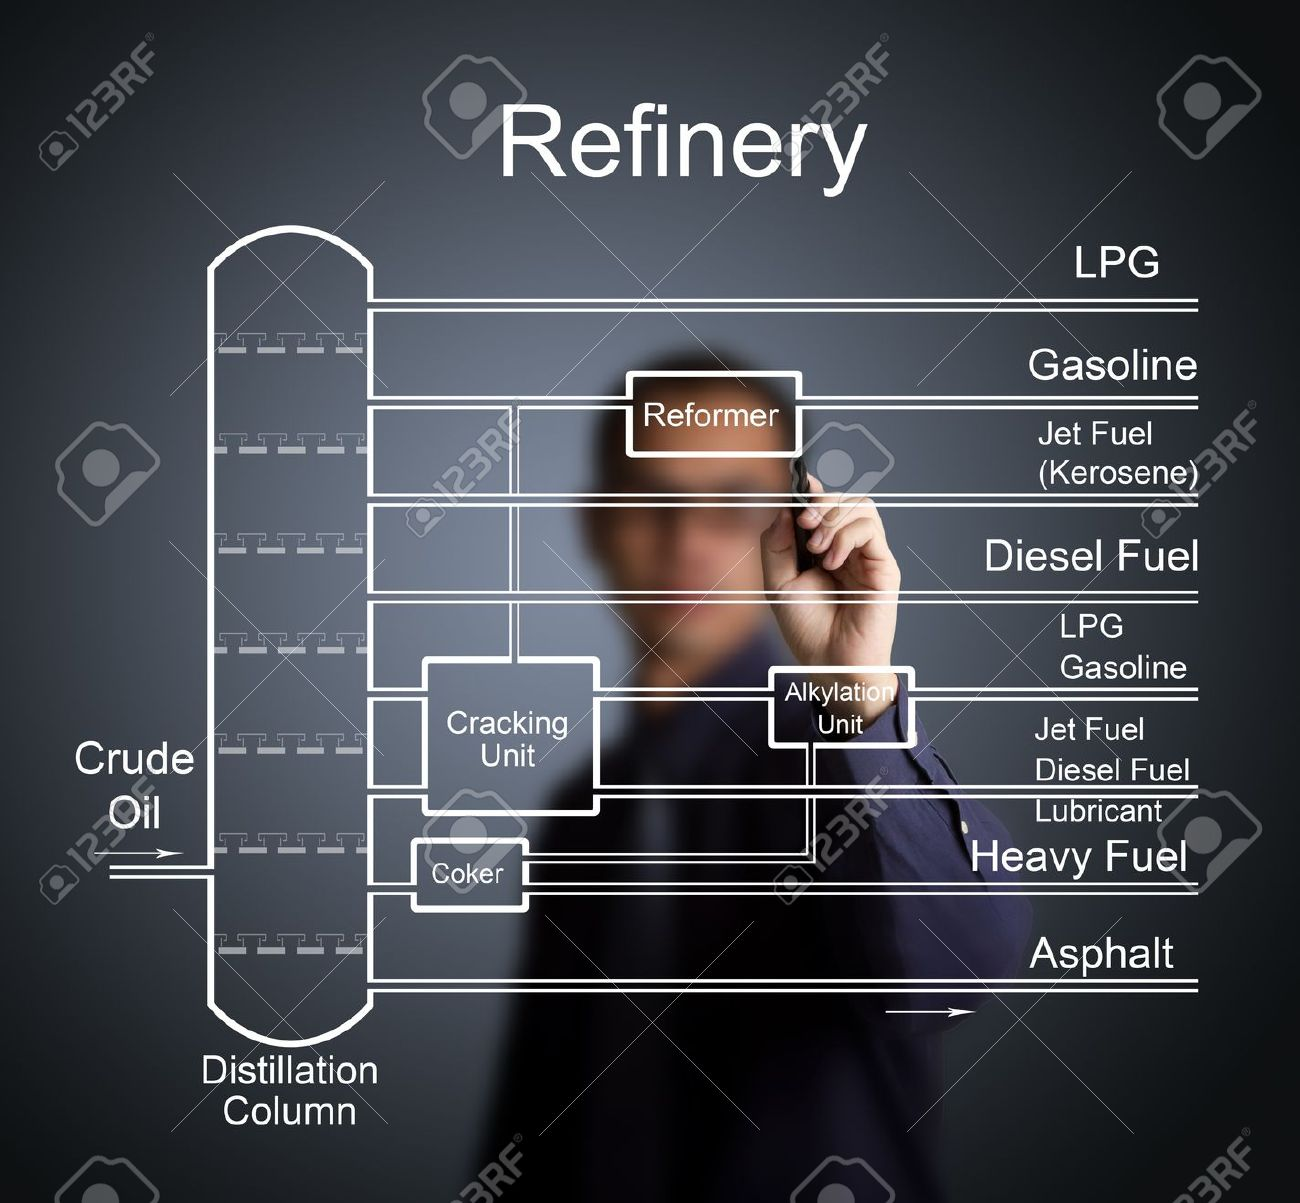 hight resolution of engineer darwing refinery of crude oil flow chart with many energy diagram of fuel to oil crude